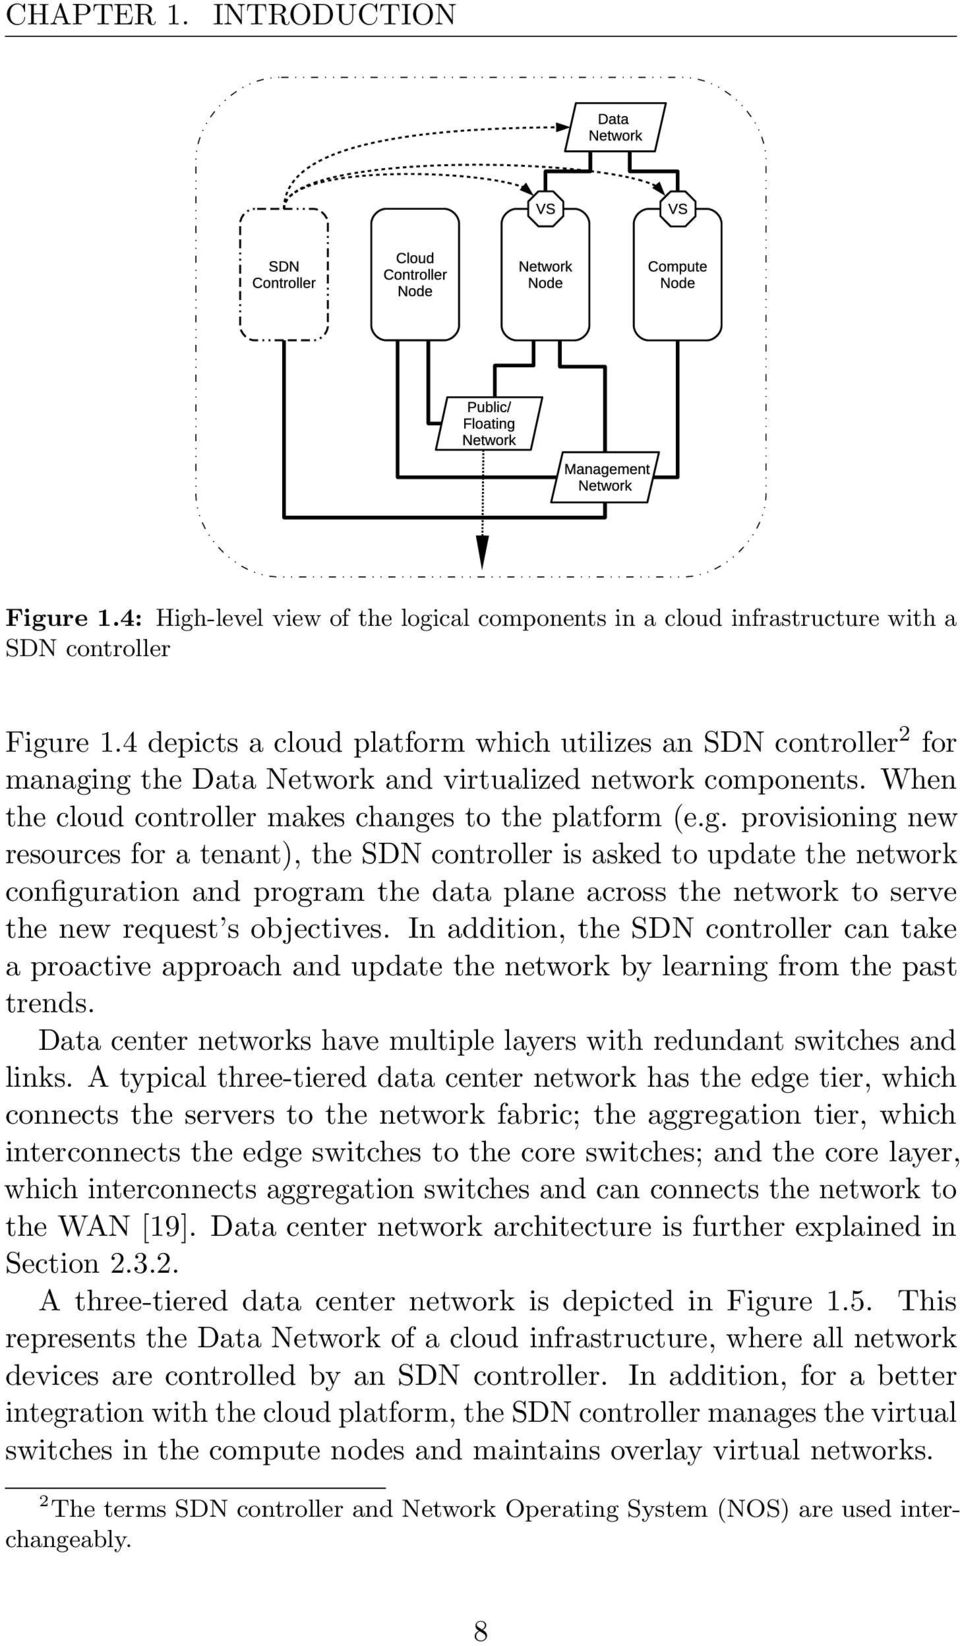 ng the Data Network and virtualized network components. When the cloud controller makes changes to the platform (e.g. provisioning new resources for a tenant), the SDN controller is asked to update the network configuration and program the data plane across the network to serve the new request s objectives.